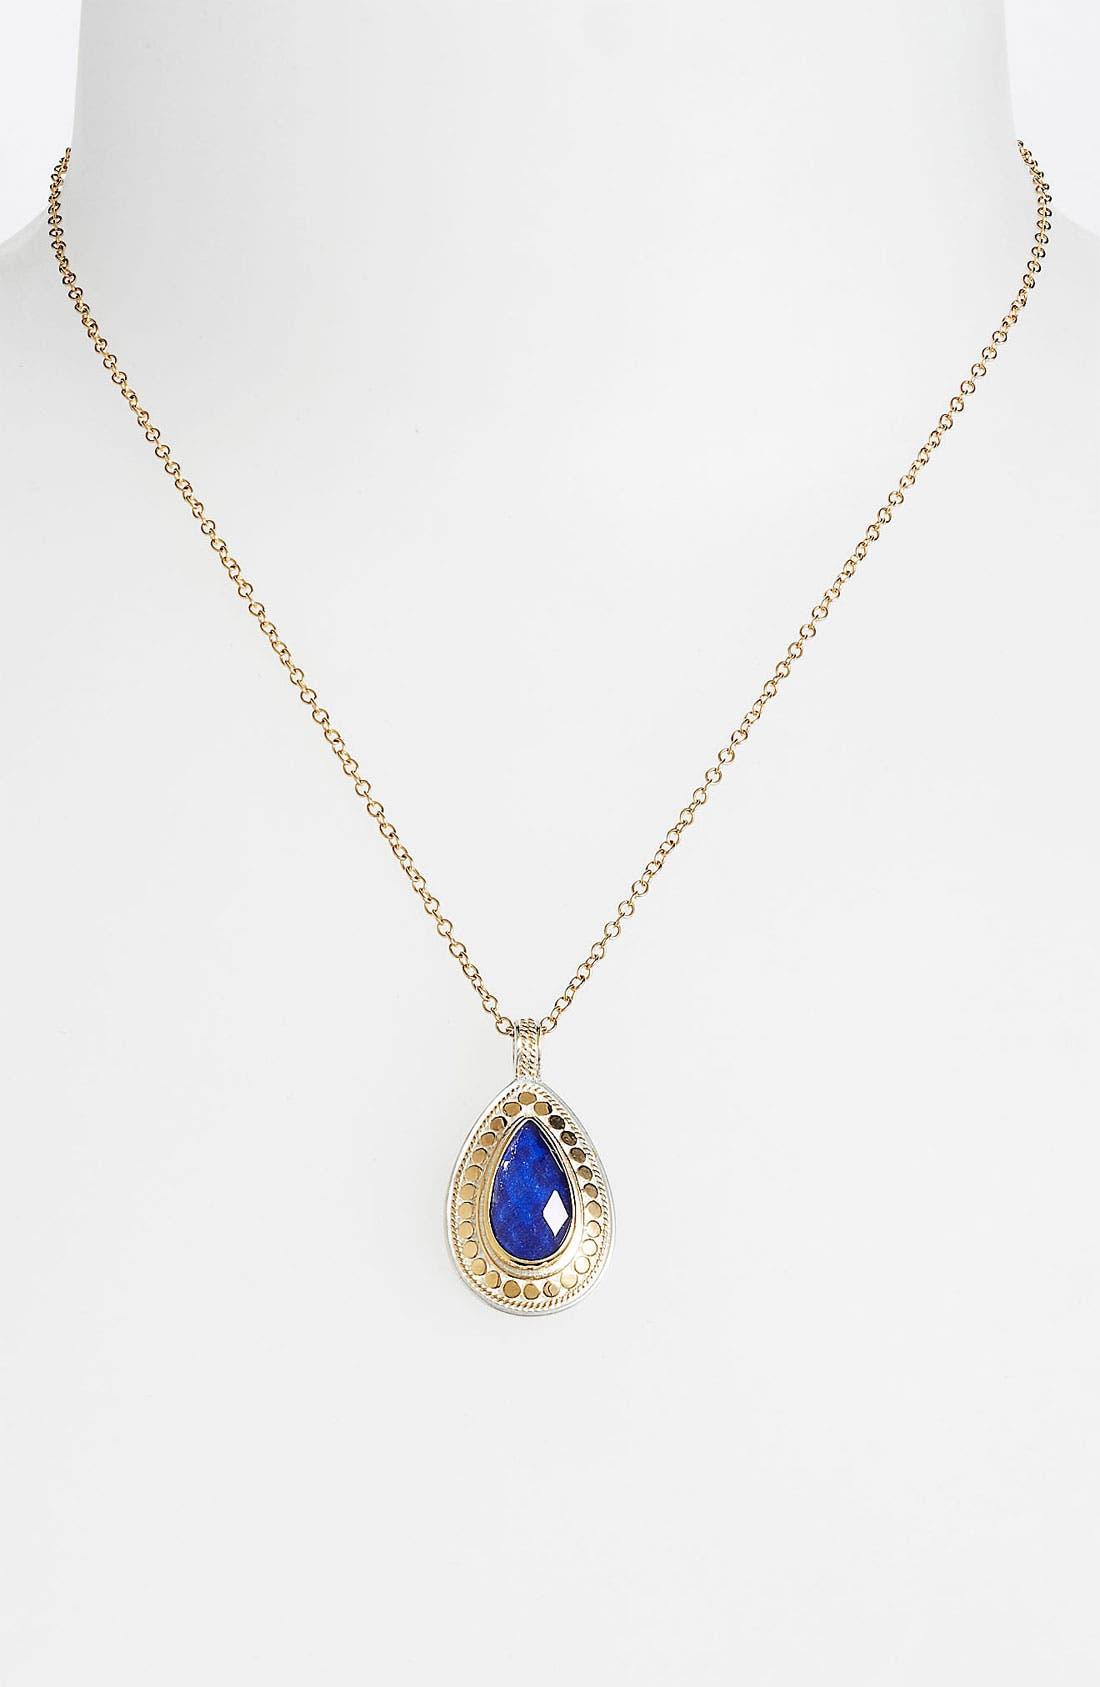 Main Image - Anna Beck 'Gili' Wire Rimmed Teardrop Pendant Necklace (Nordstrom Exclusive)